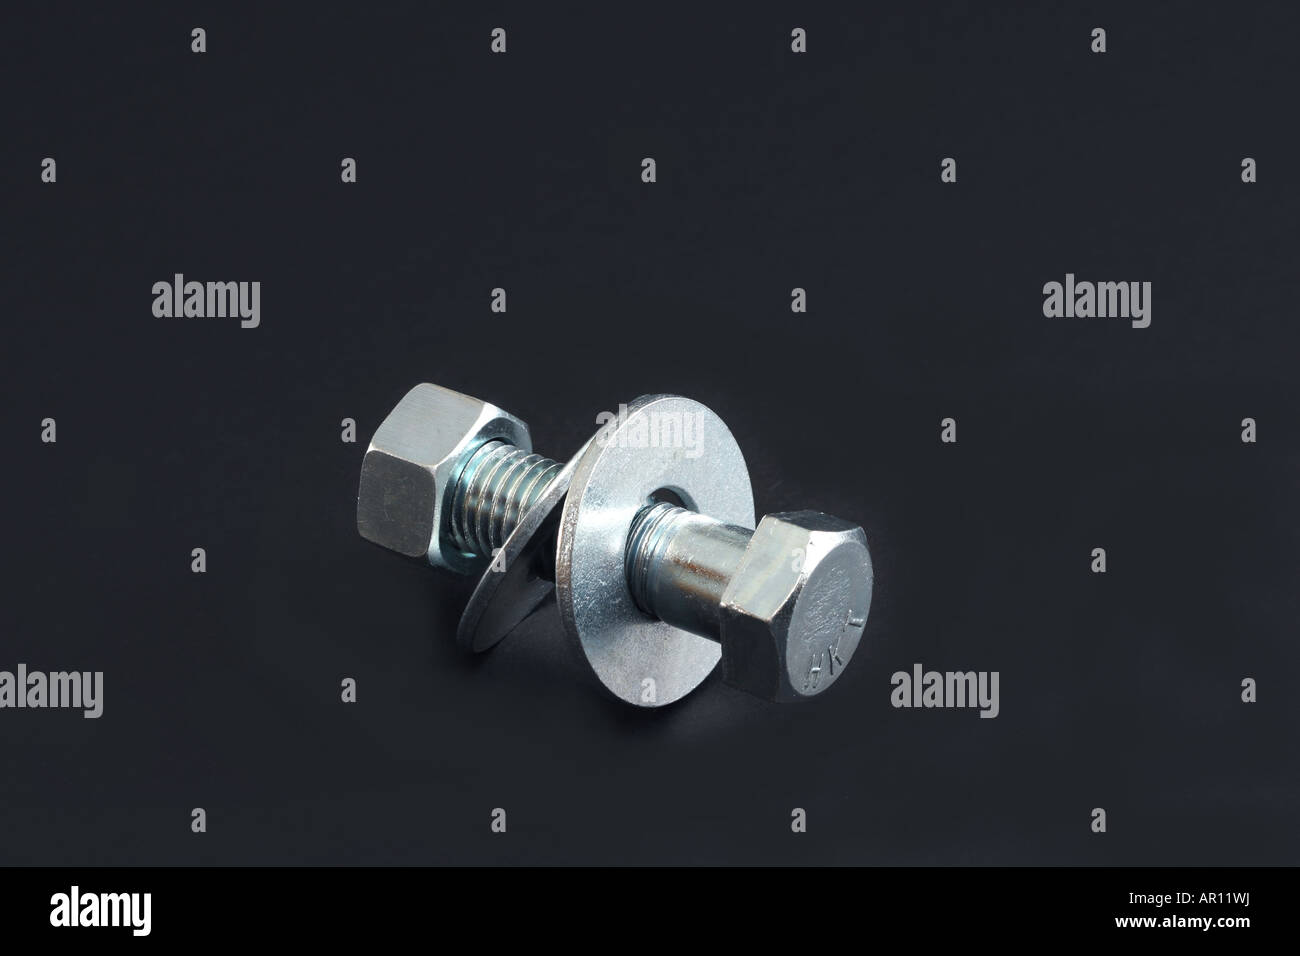 A bolt with washers and nut attached. - Stock Image